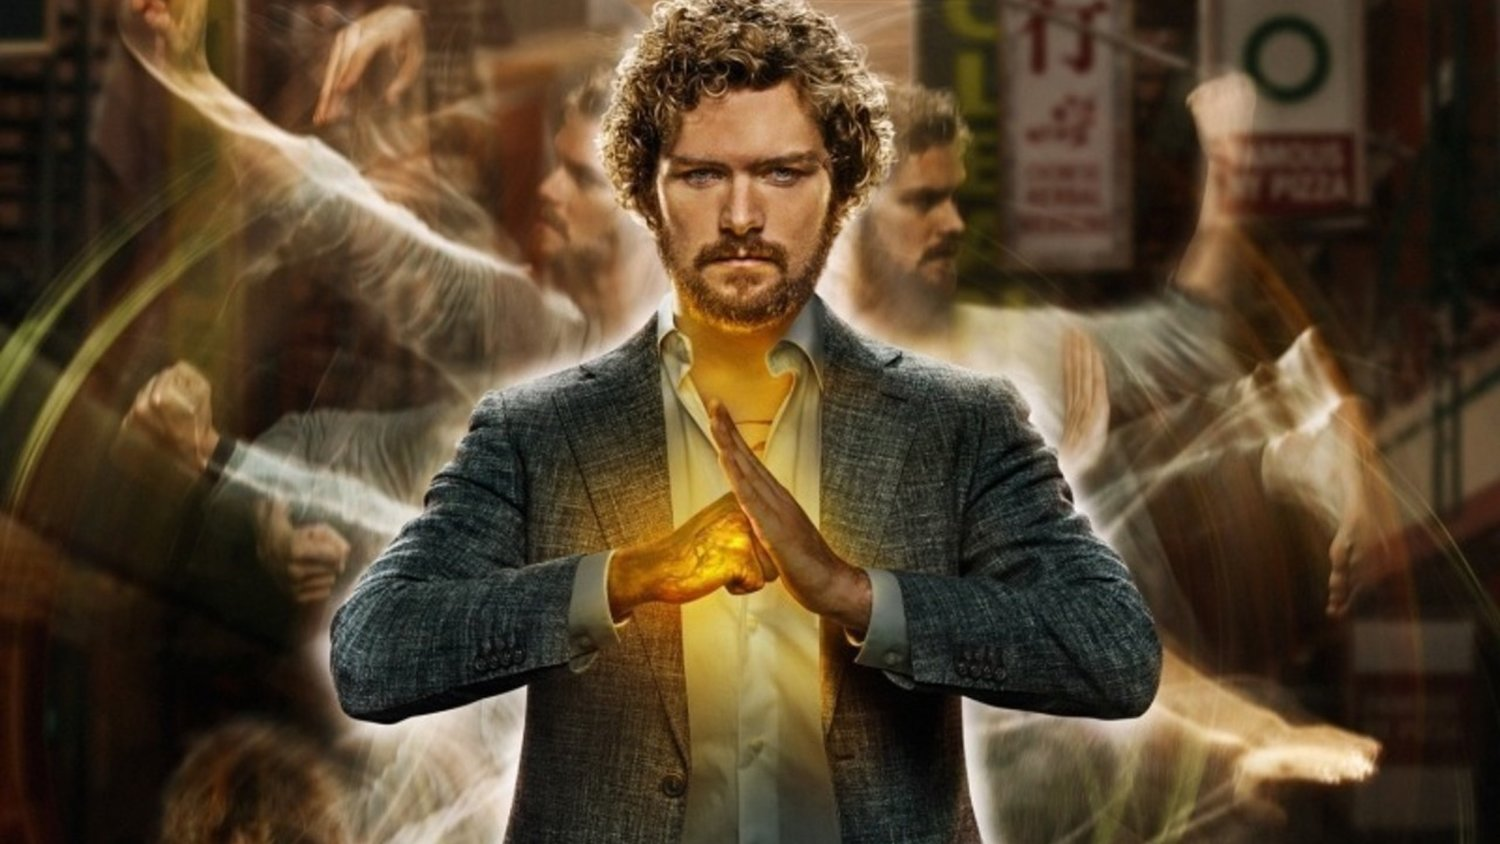 Marvel's IRON FIST: All the Easter Eggs, References, and Defenders Connections